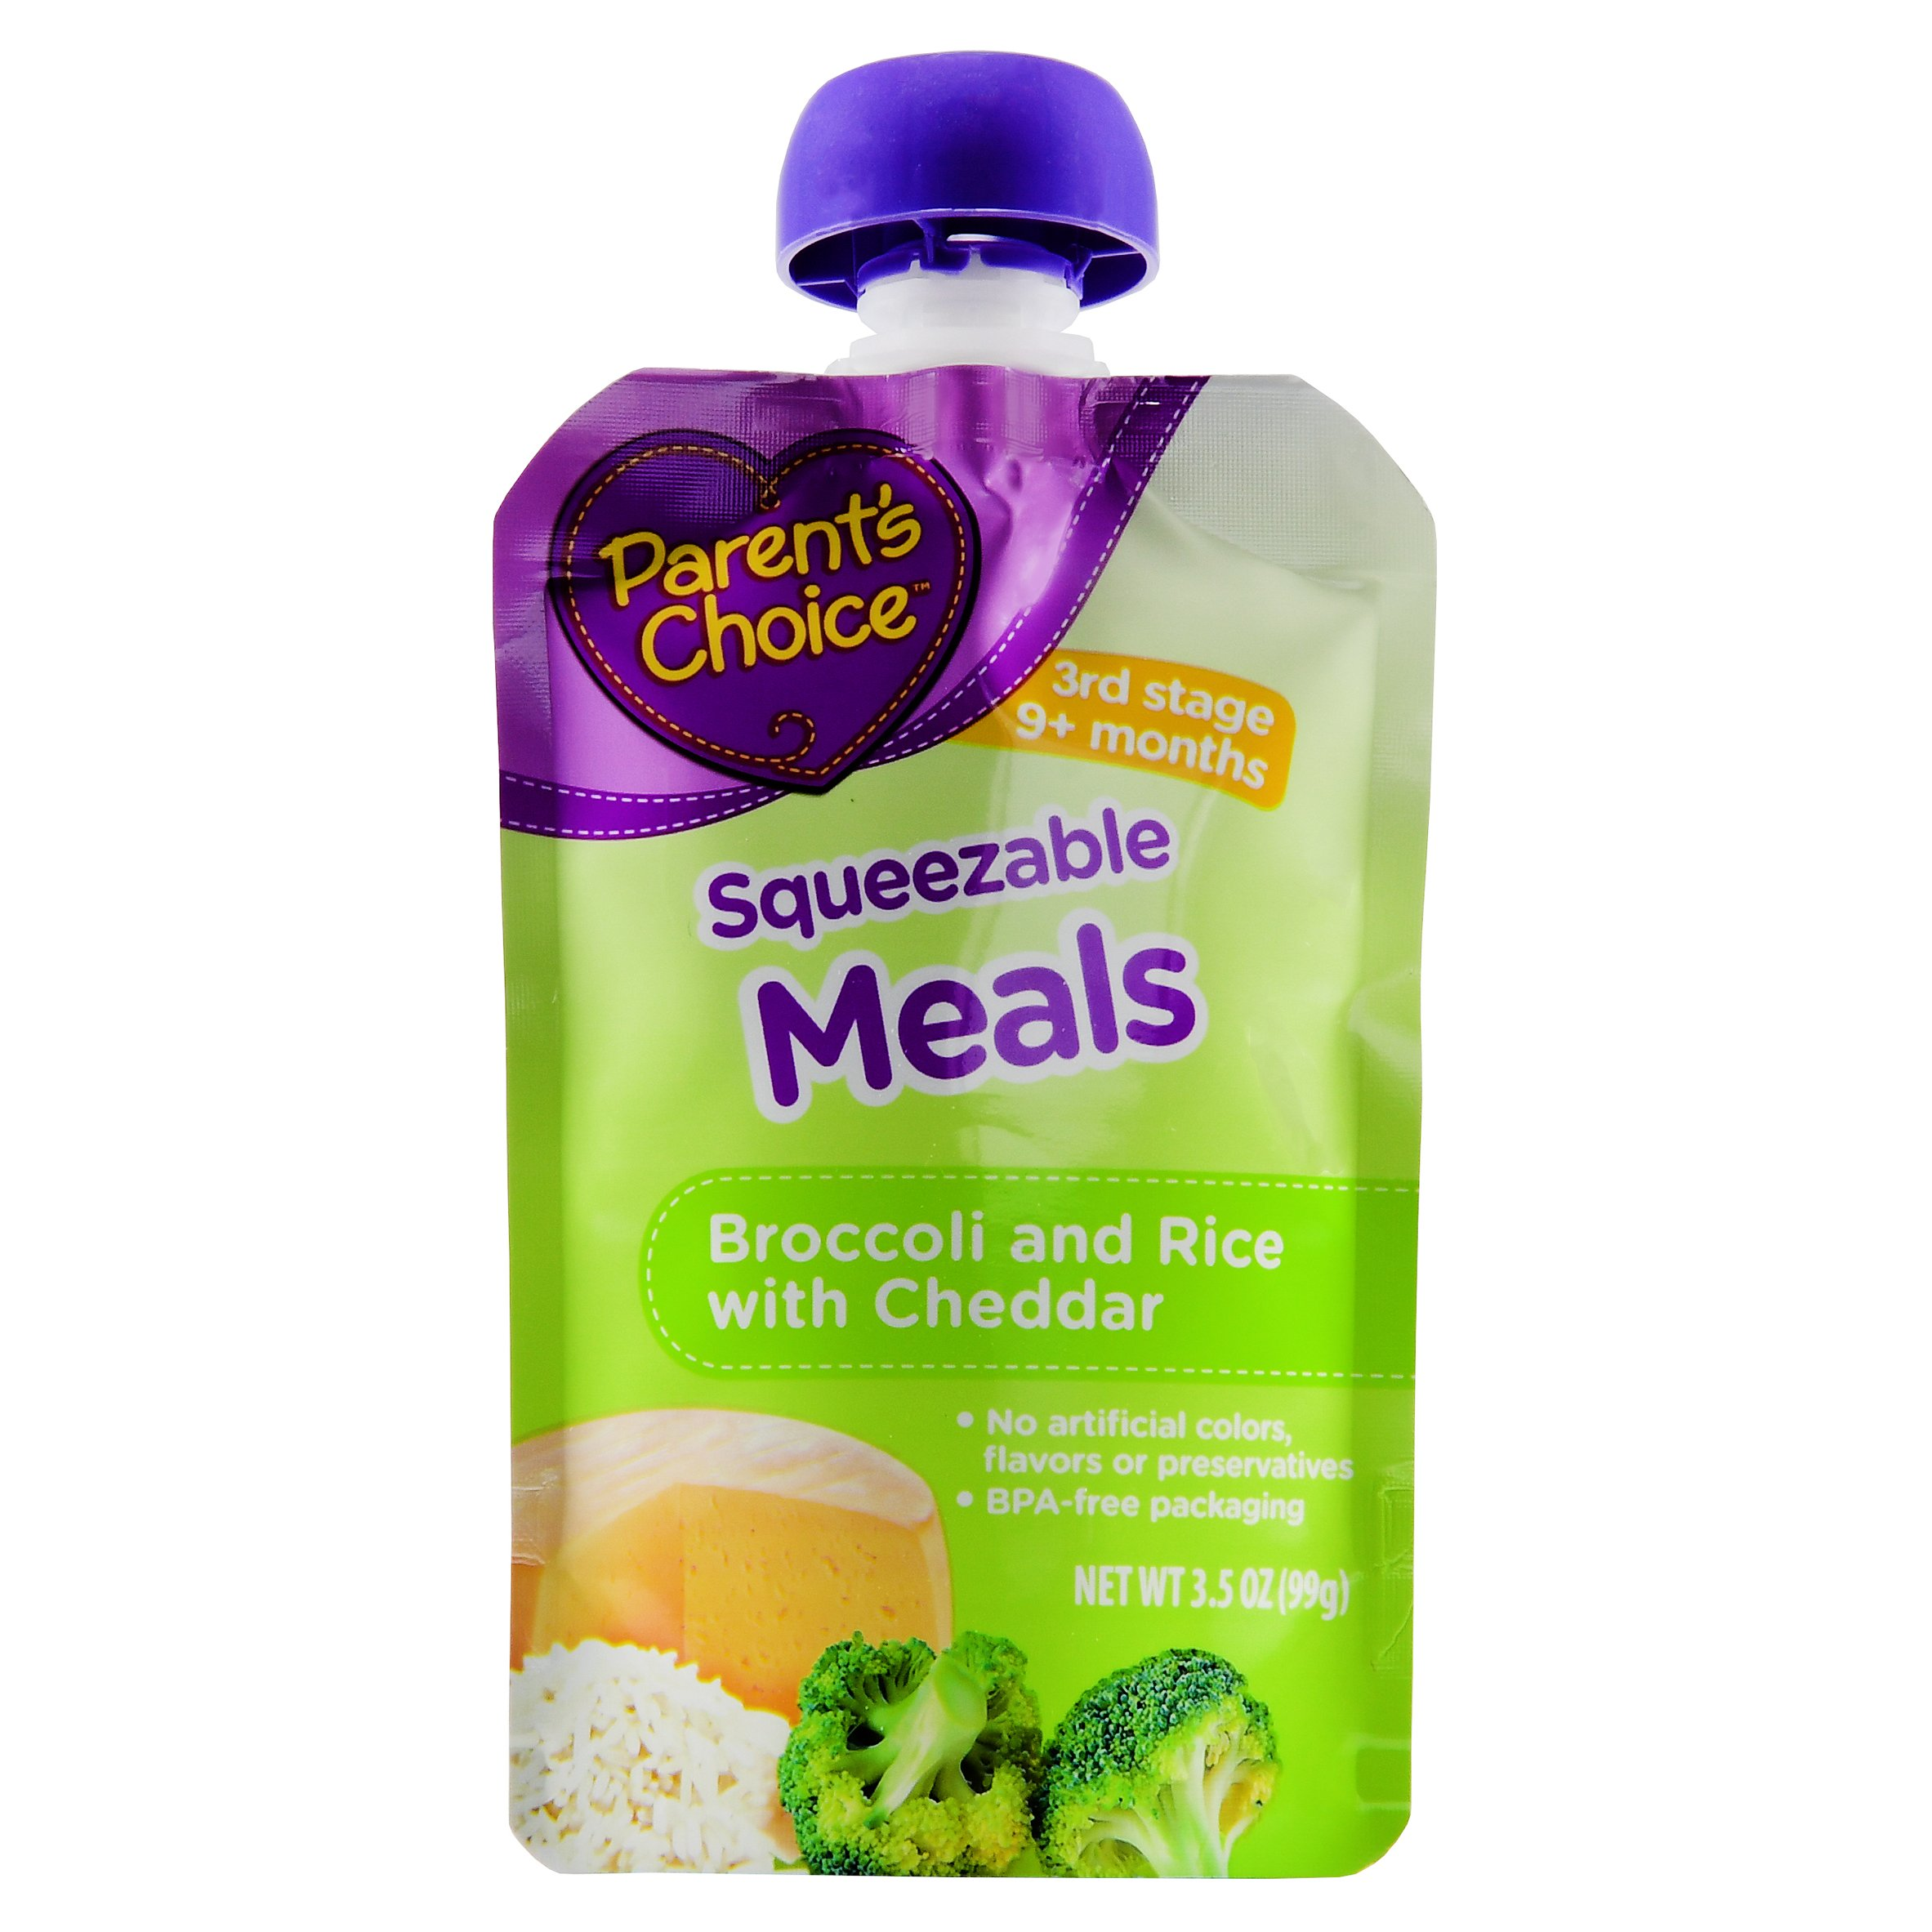 Parent's Choice Baby Food, Stage 3, Broccoli & Rice with Cheddar, 3.5oz Pouch